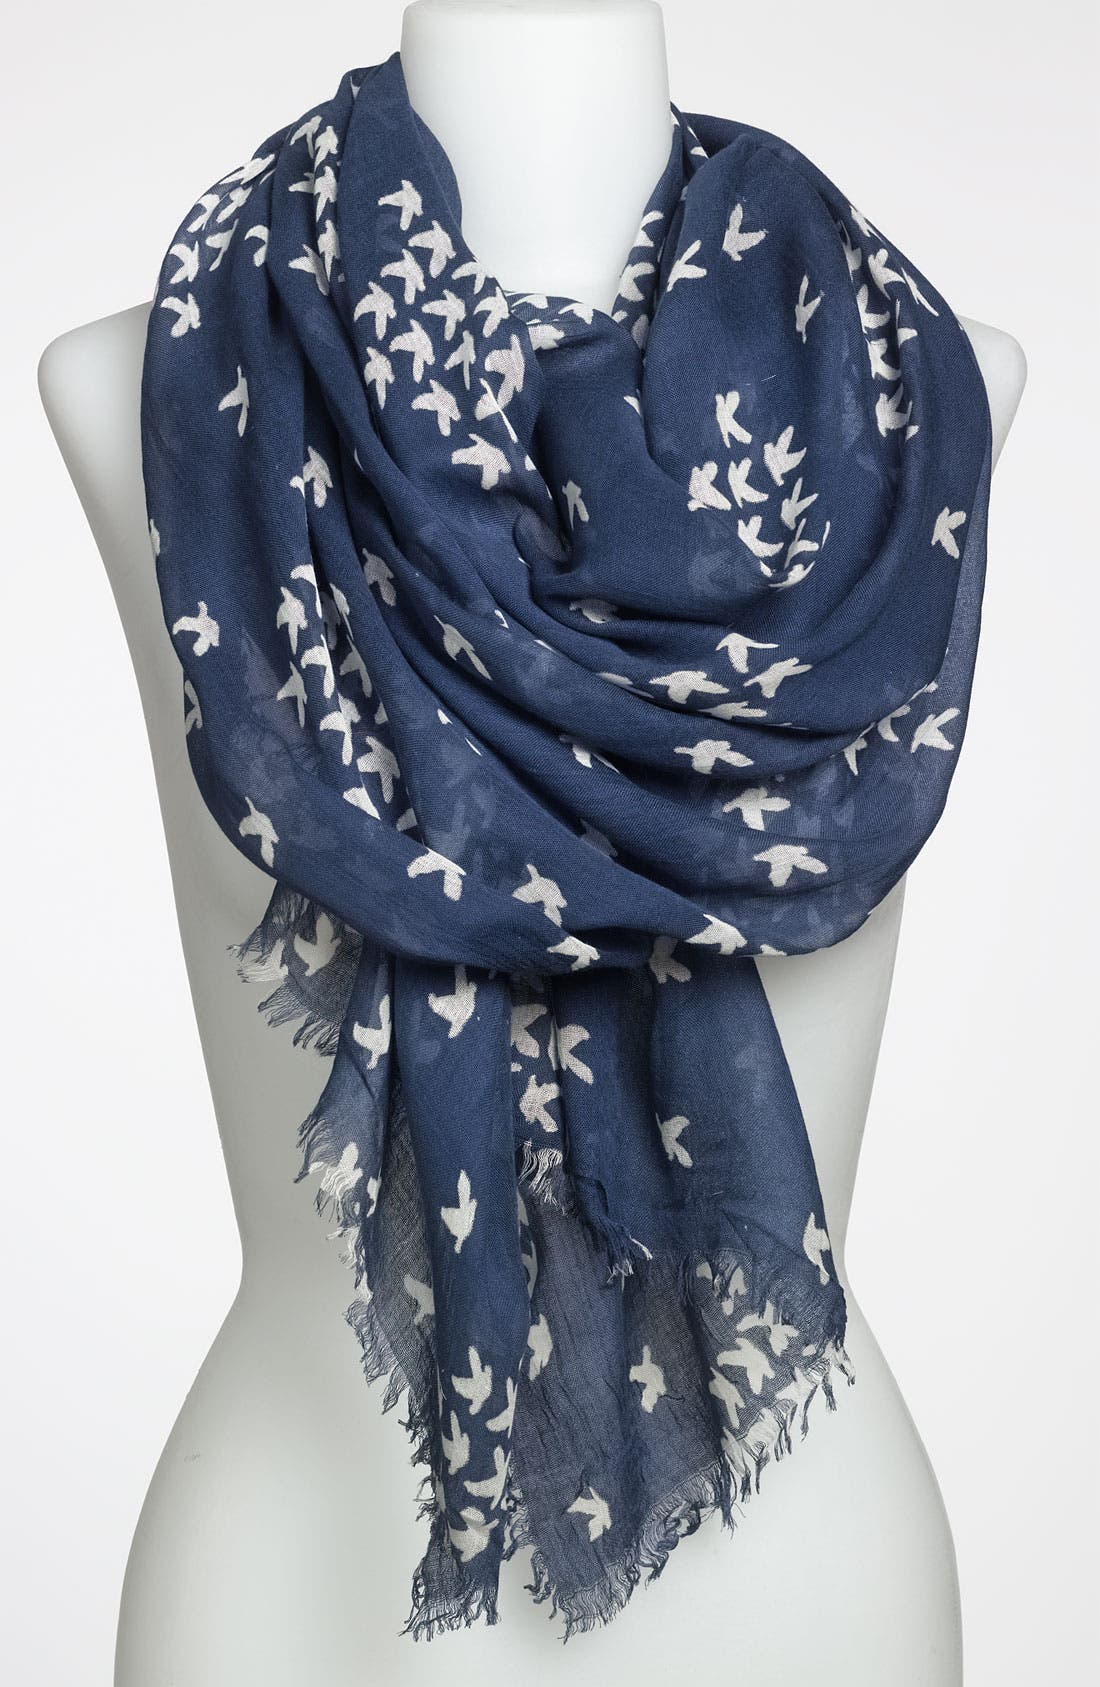 Main Image - Steve Madden 'School of Birds' Scarf